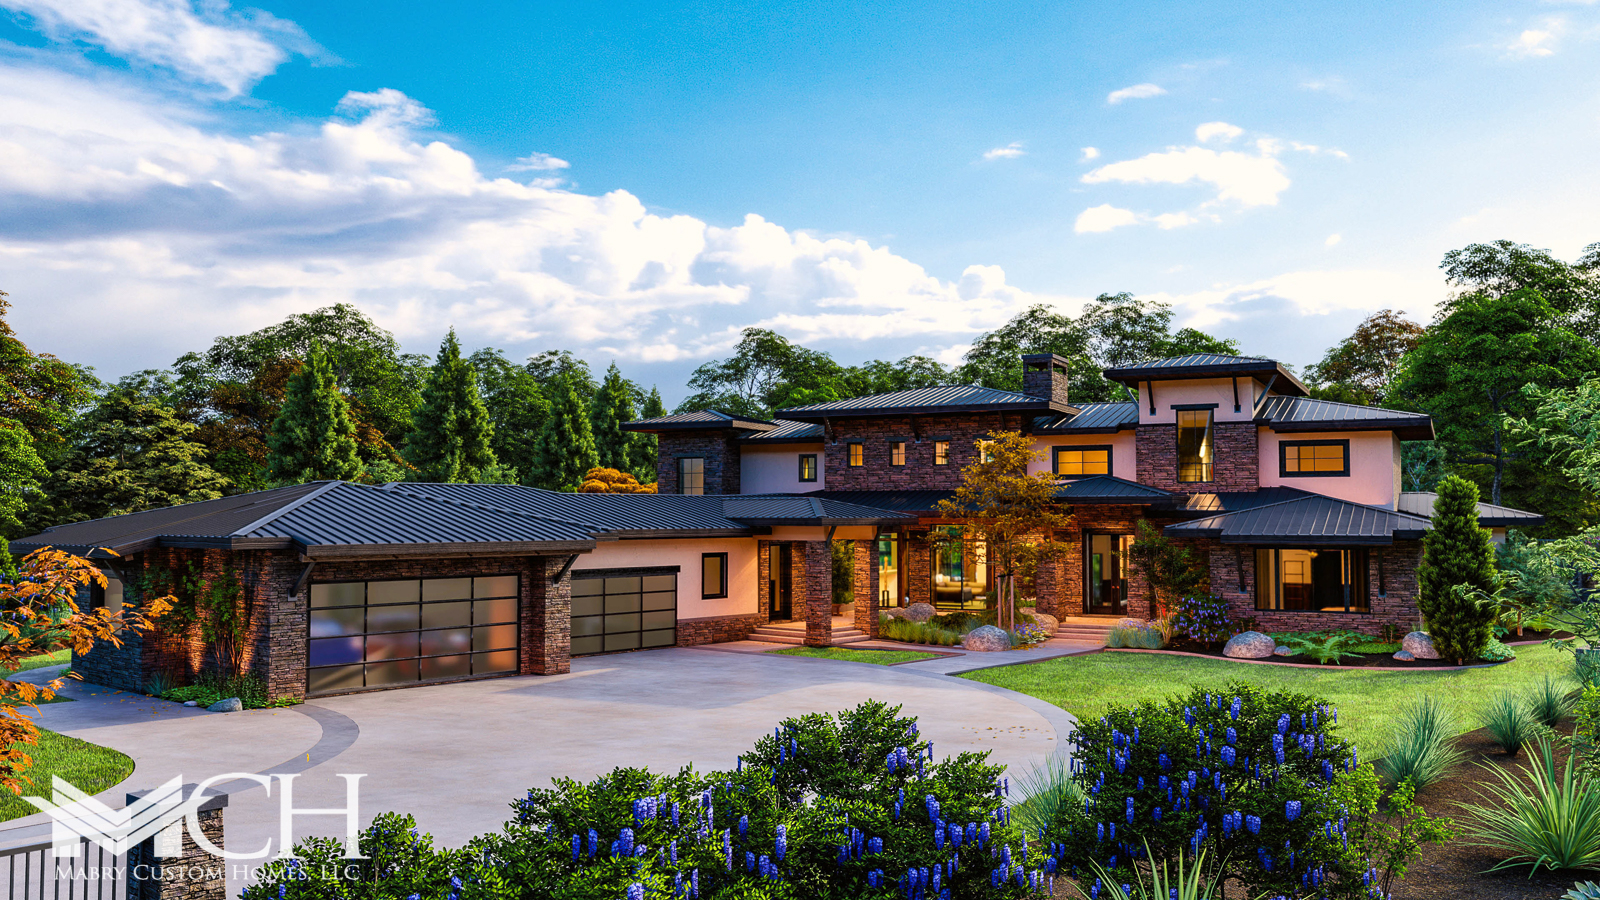 Luxury Homes And Designs For Sale Mabry Custom Homes